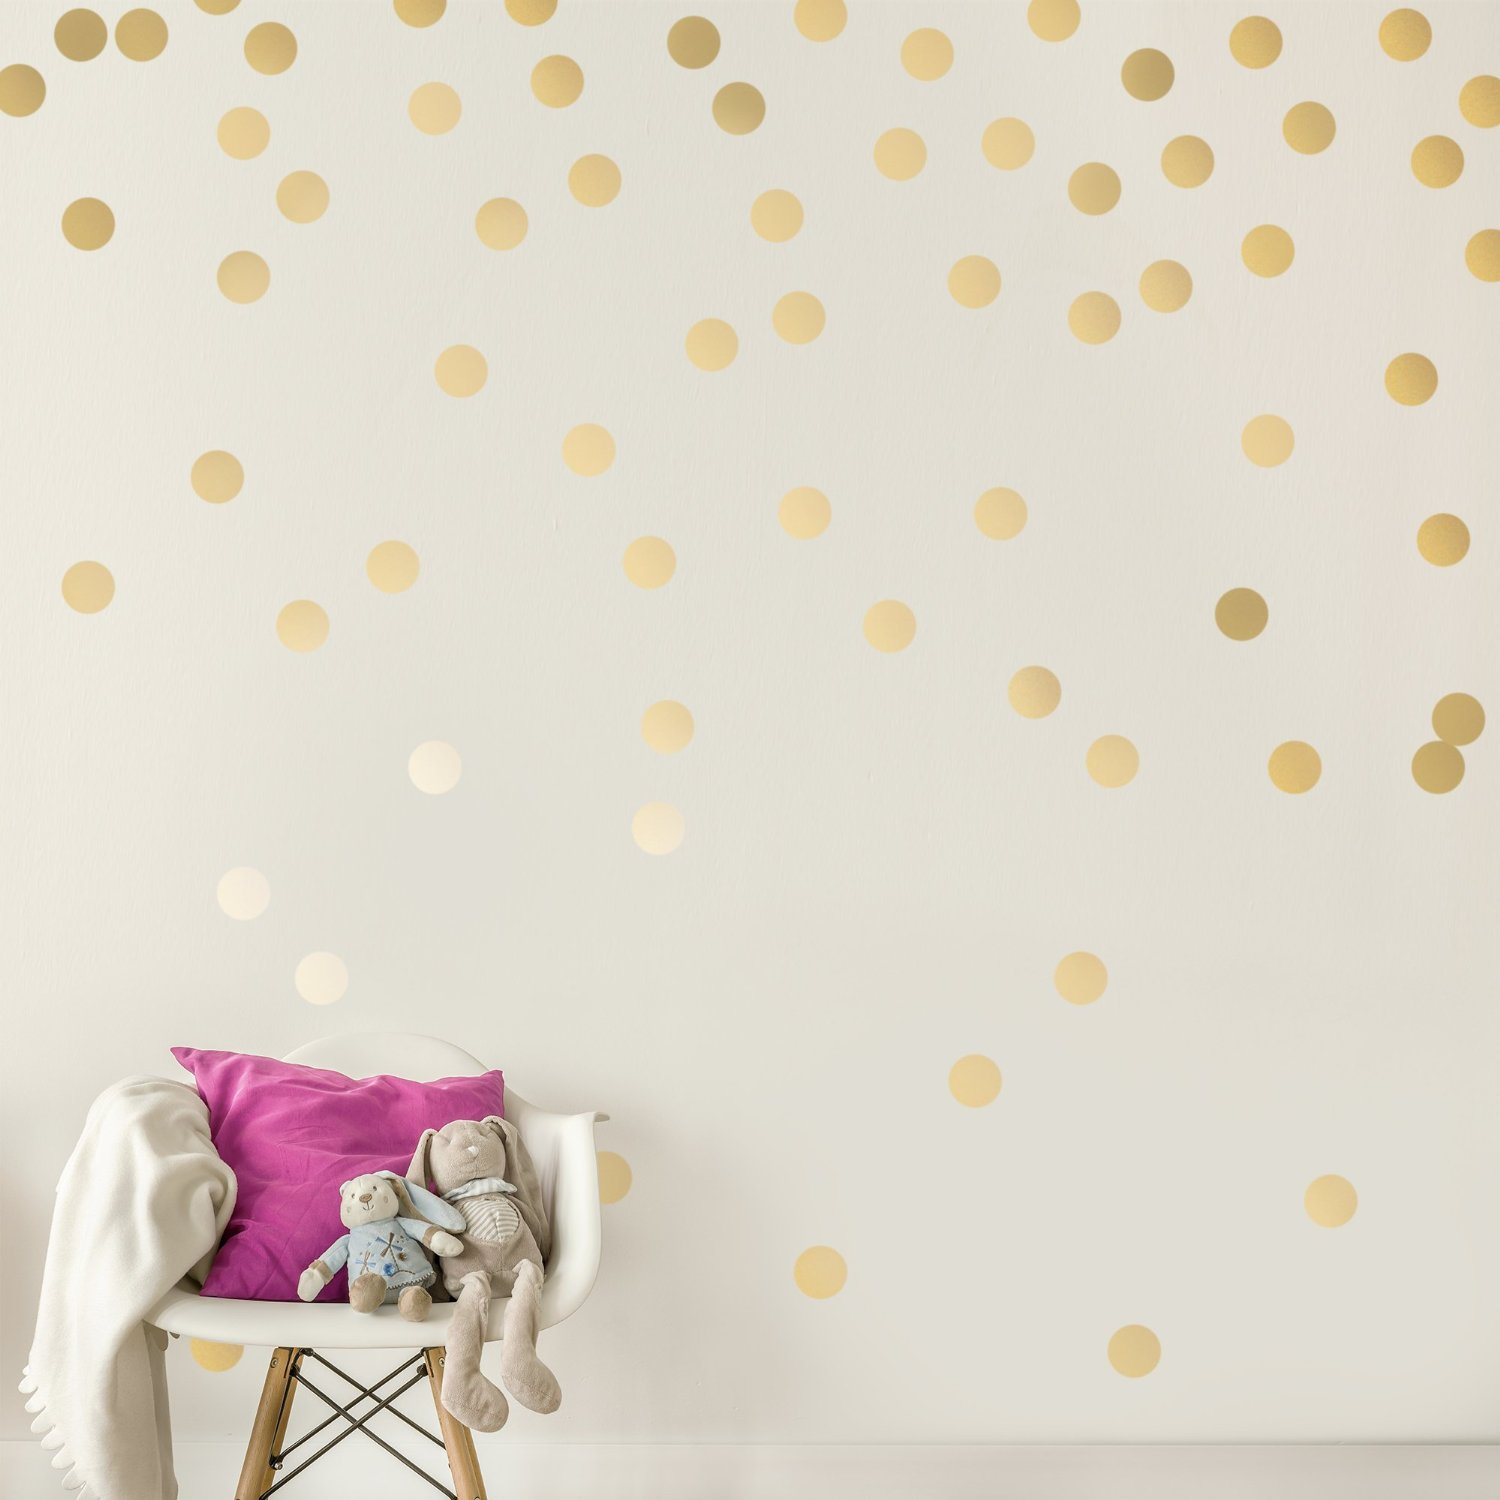 online get cheap wall dots decals aliexpress com alibaba group c053 gold wall decal dots easy peel stick round circle art glitter sayings sticker large paper sheet set for nursery room